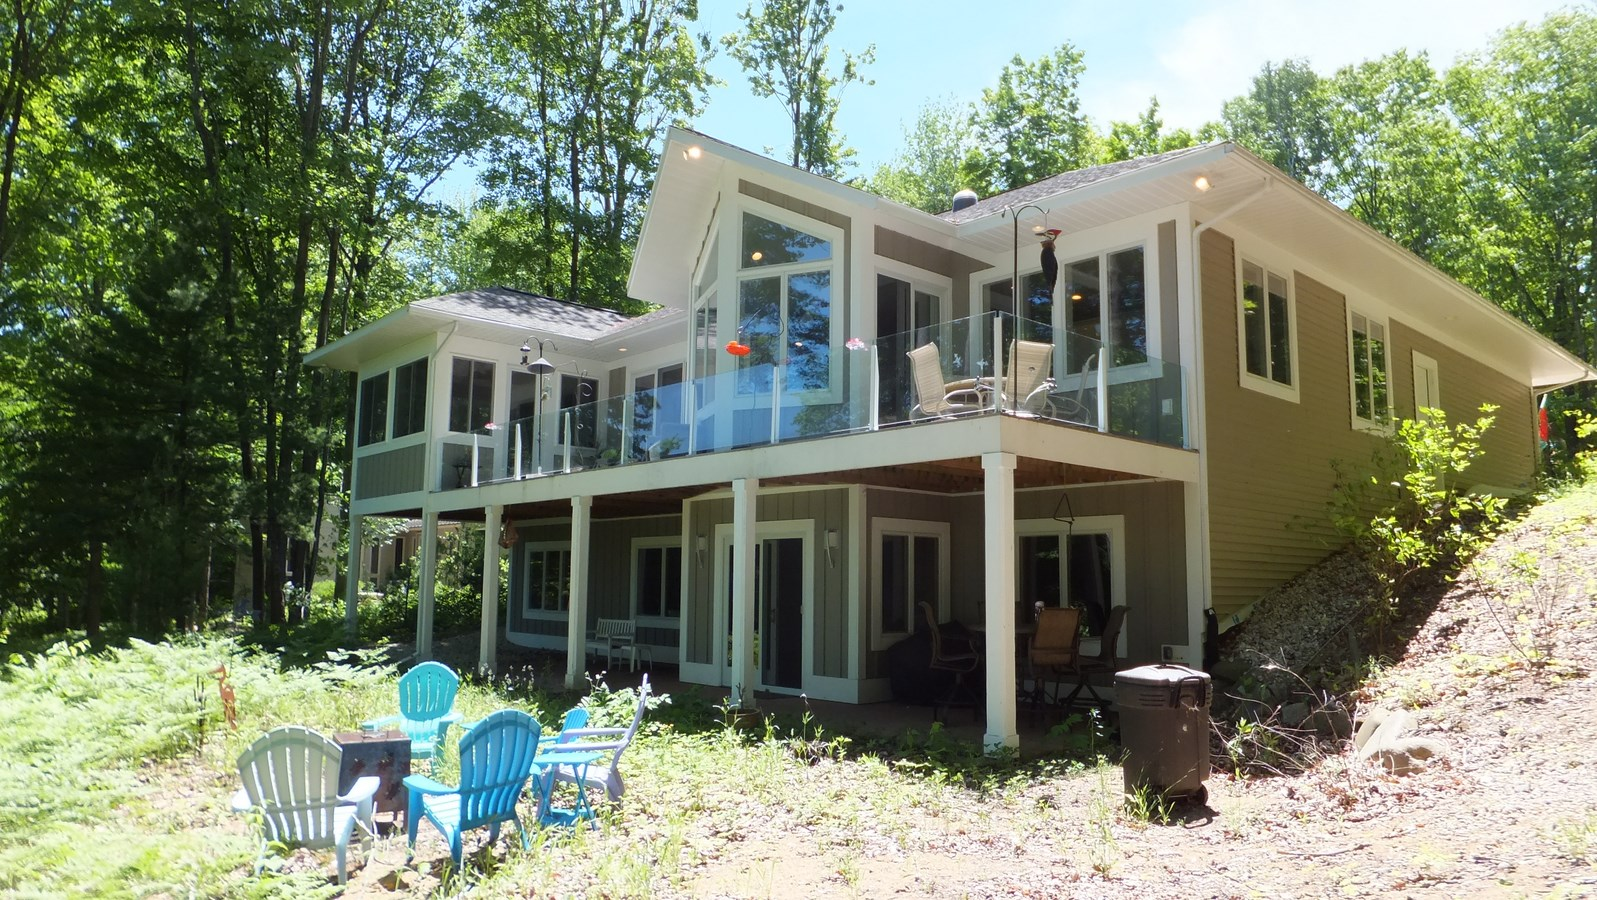 Leed for homes platinum turtle lake cottage up for sale for Leed cabins